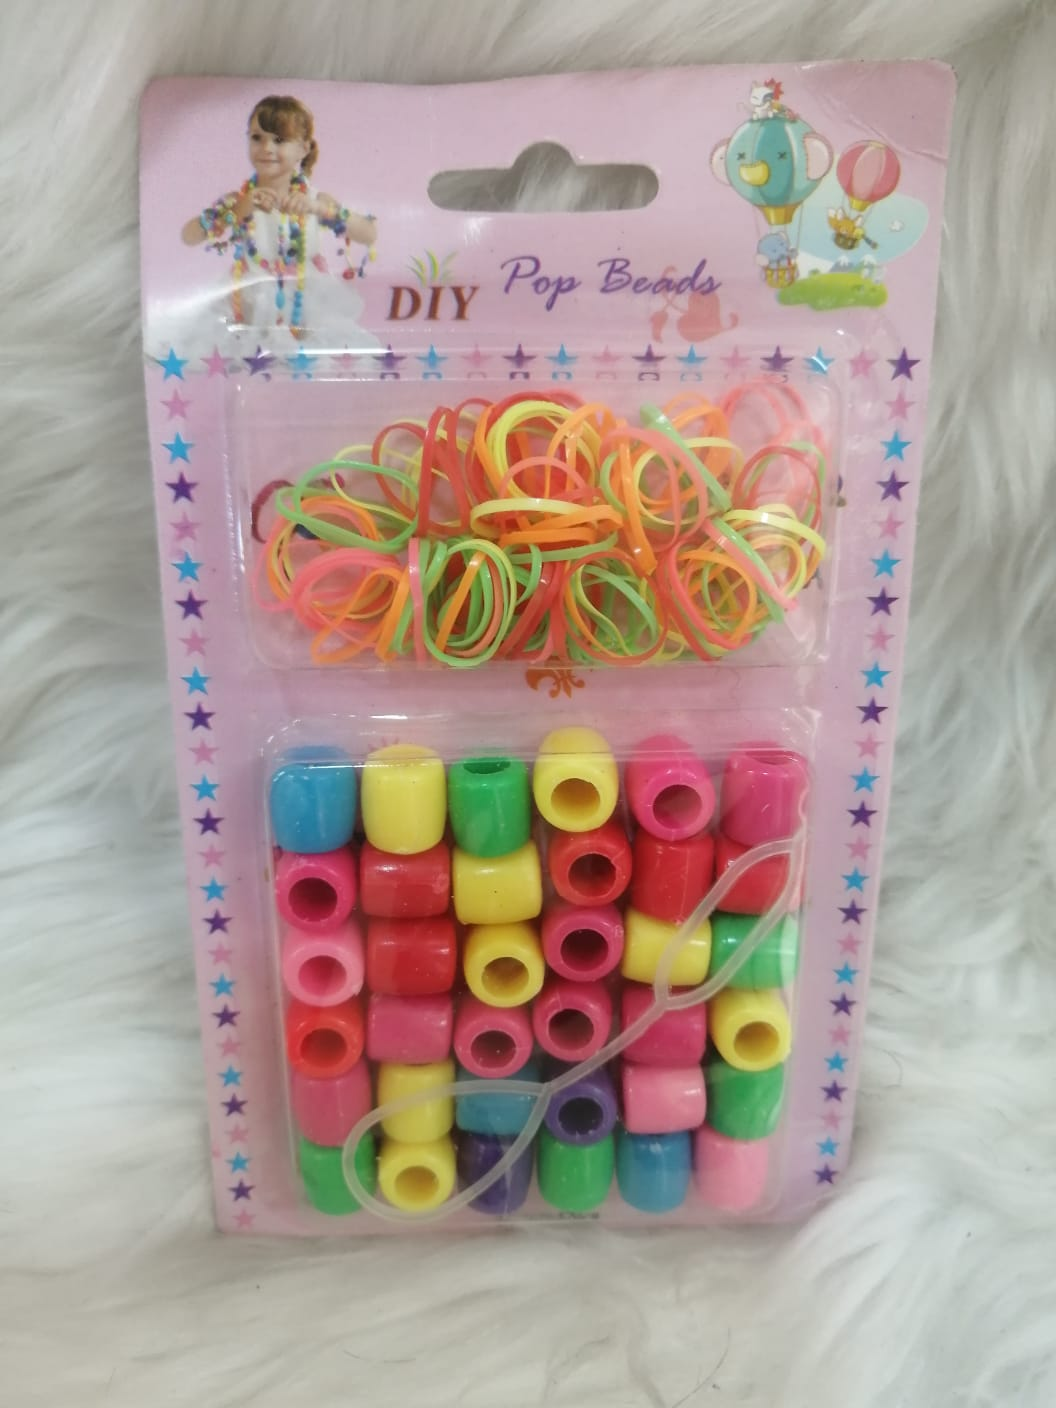 DIY Pop Hair bead